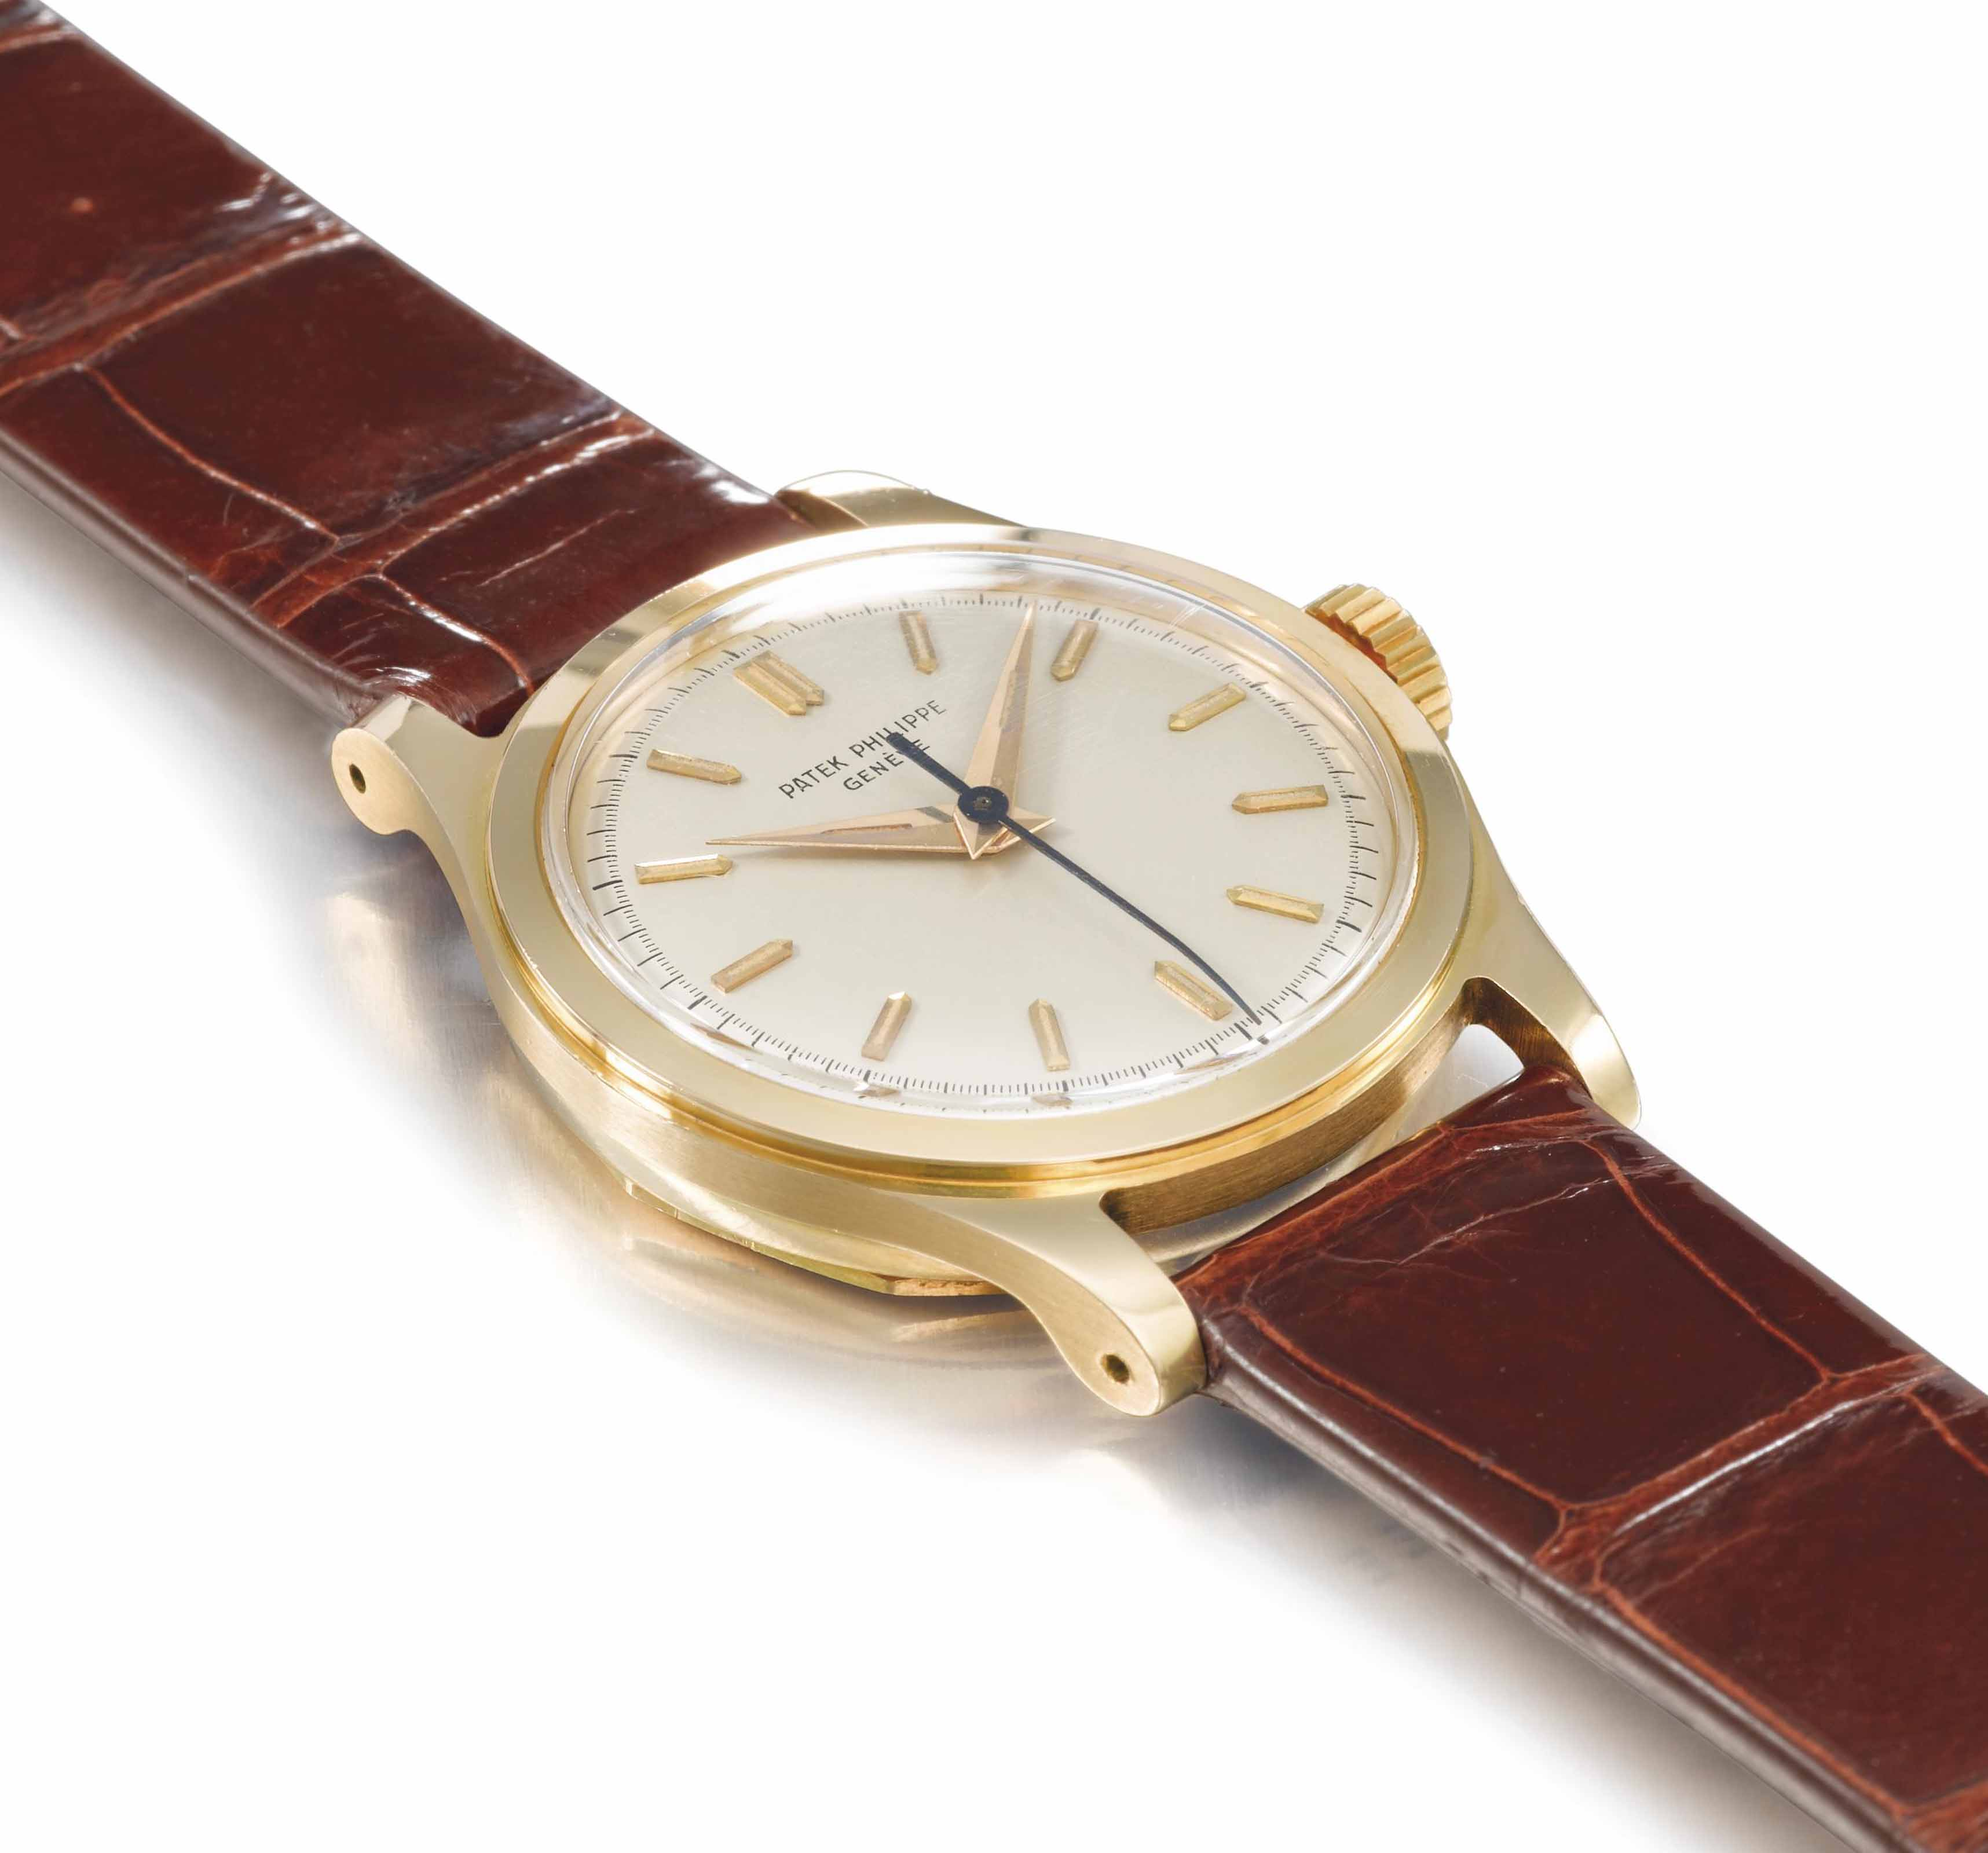 PATEK PHILIPPE. A FINE AND RARE 18K GOLD WRISTWATCH WITH SWEEP CENTRE SECONDS